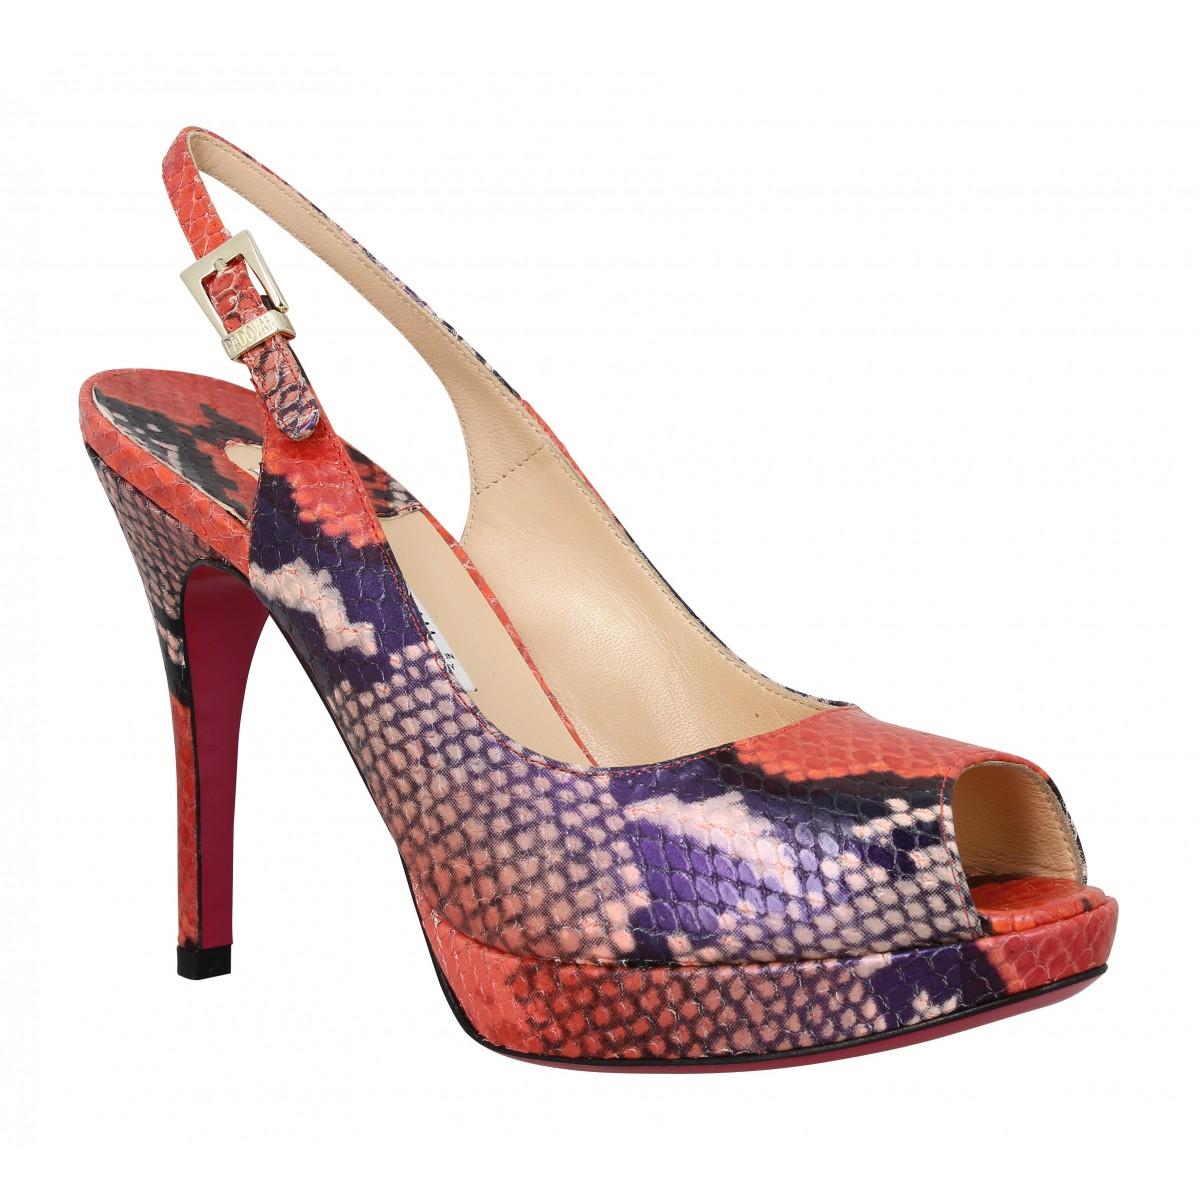 Sandales talons LUCIANO PADOVAN 838 python Femme Rouge